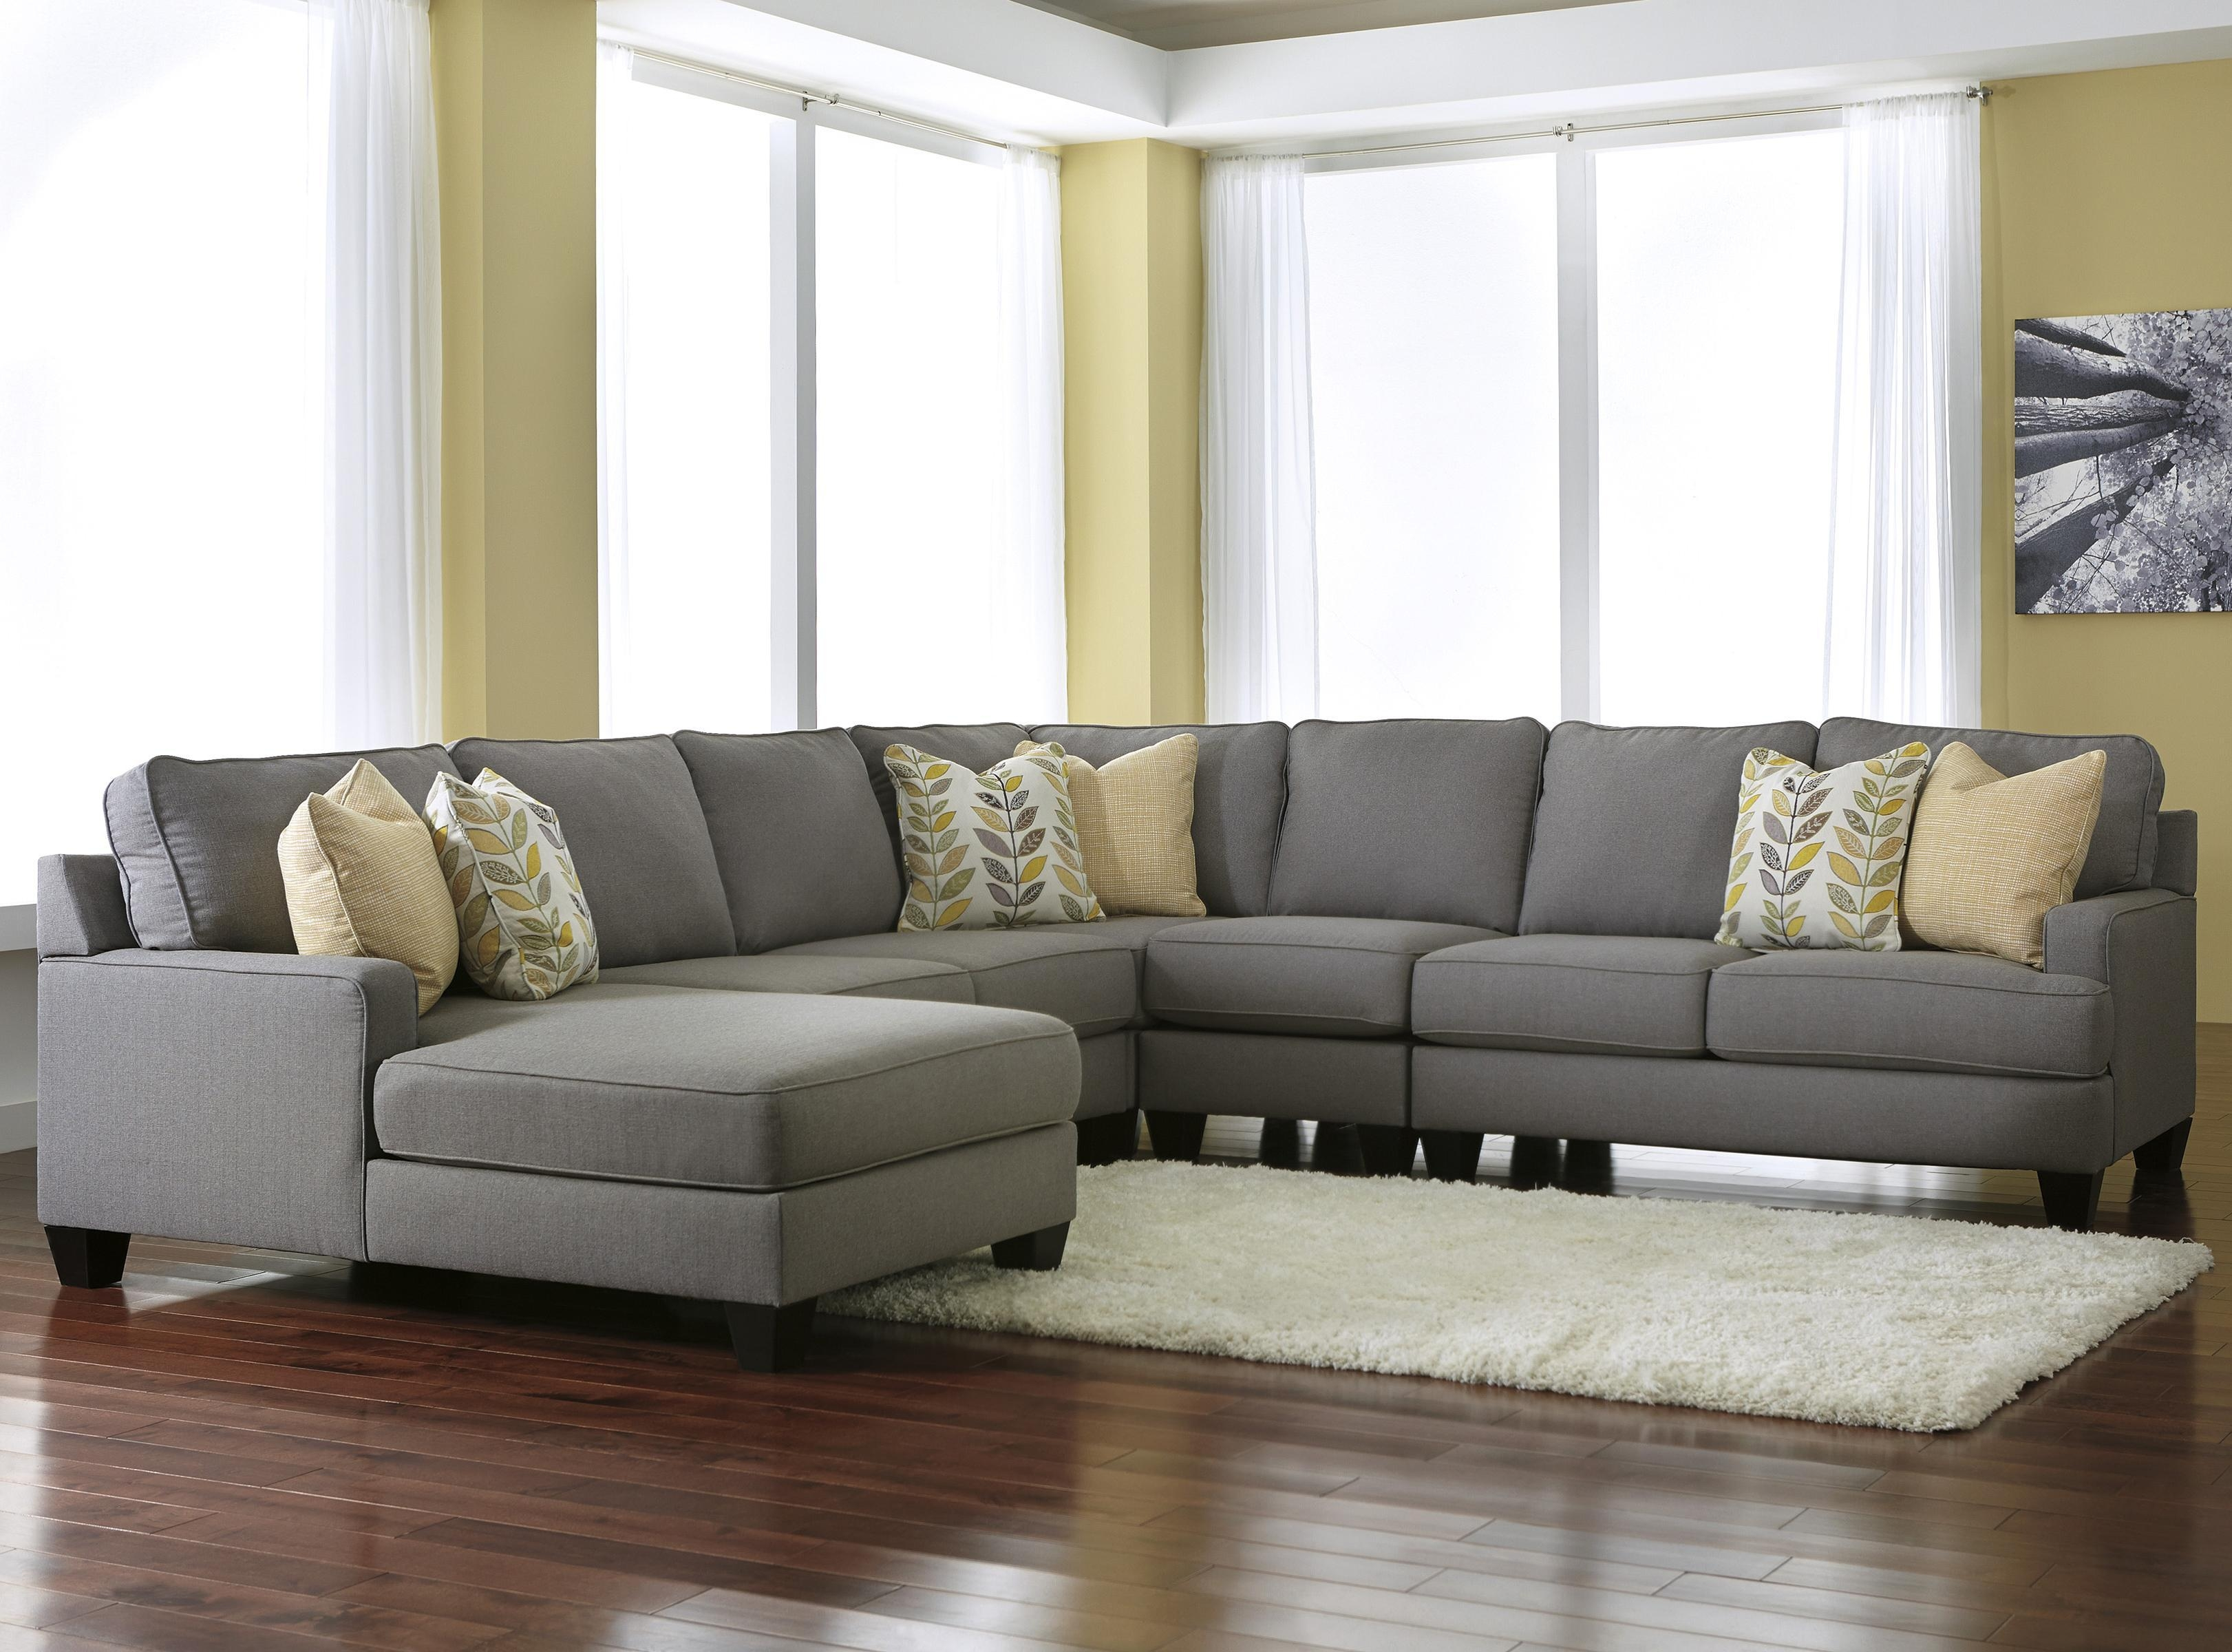 Signature Designashley Chamberly – Alloy Modern 5 Piece With Regard To Signature Design Sectional Sofas (Image 7 of 20)